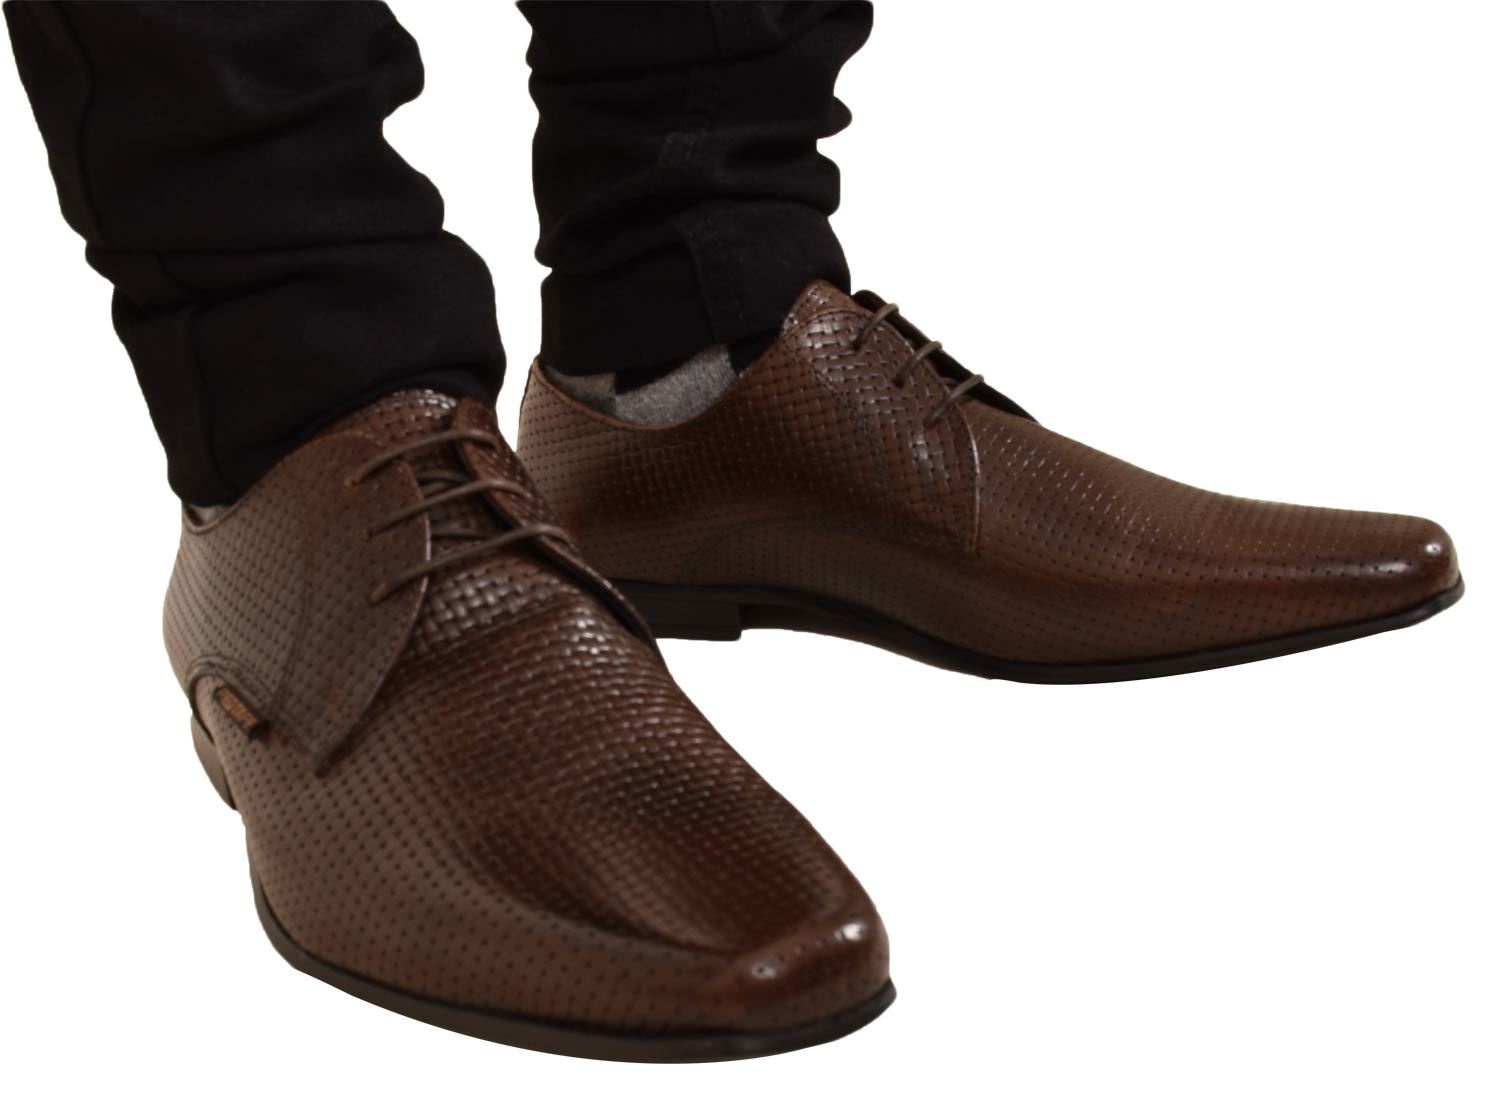 Mens-UK-Style-Leather-Lining-Formal-Office-Wedding-Smart-Work-Brogue-Shoes thumbnail 64